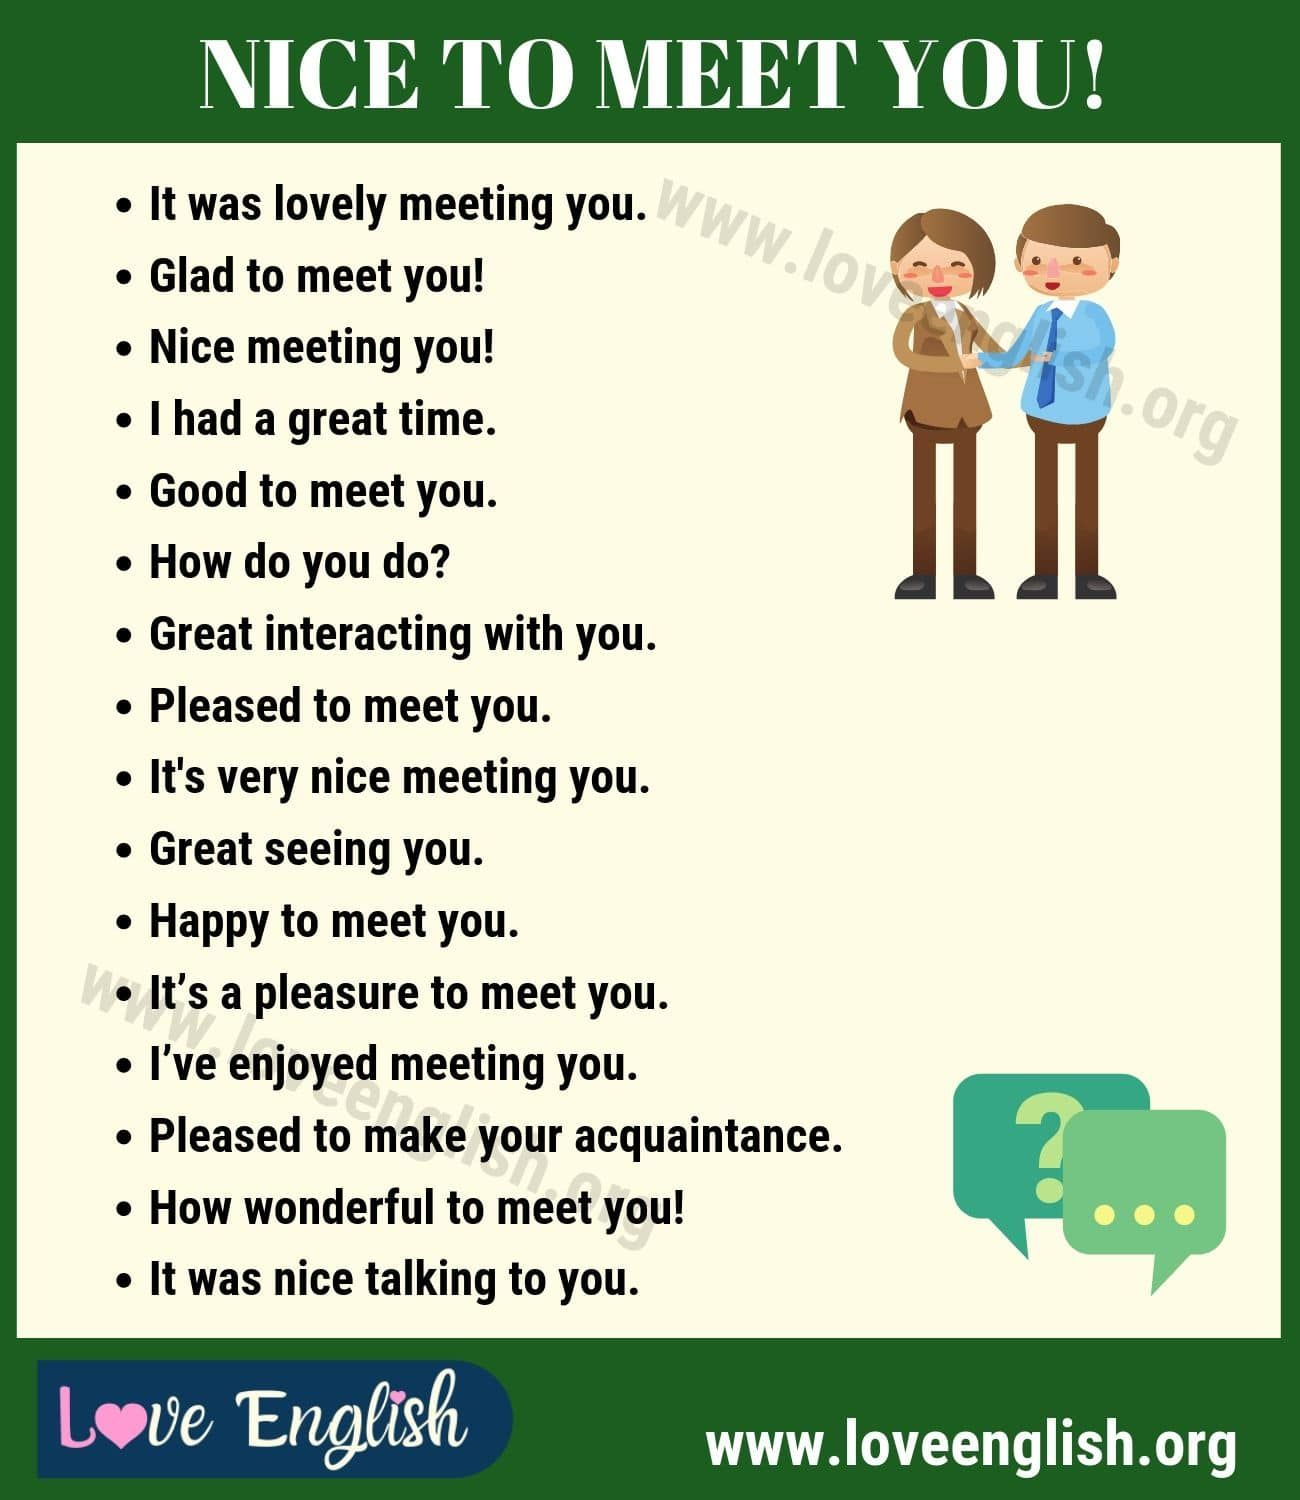 Nice To Meet You 16 Different Ways To Say Nice To Meet You Love English In 2020 Learn English Words How To Speak Spanish Learn English Vocabulary